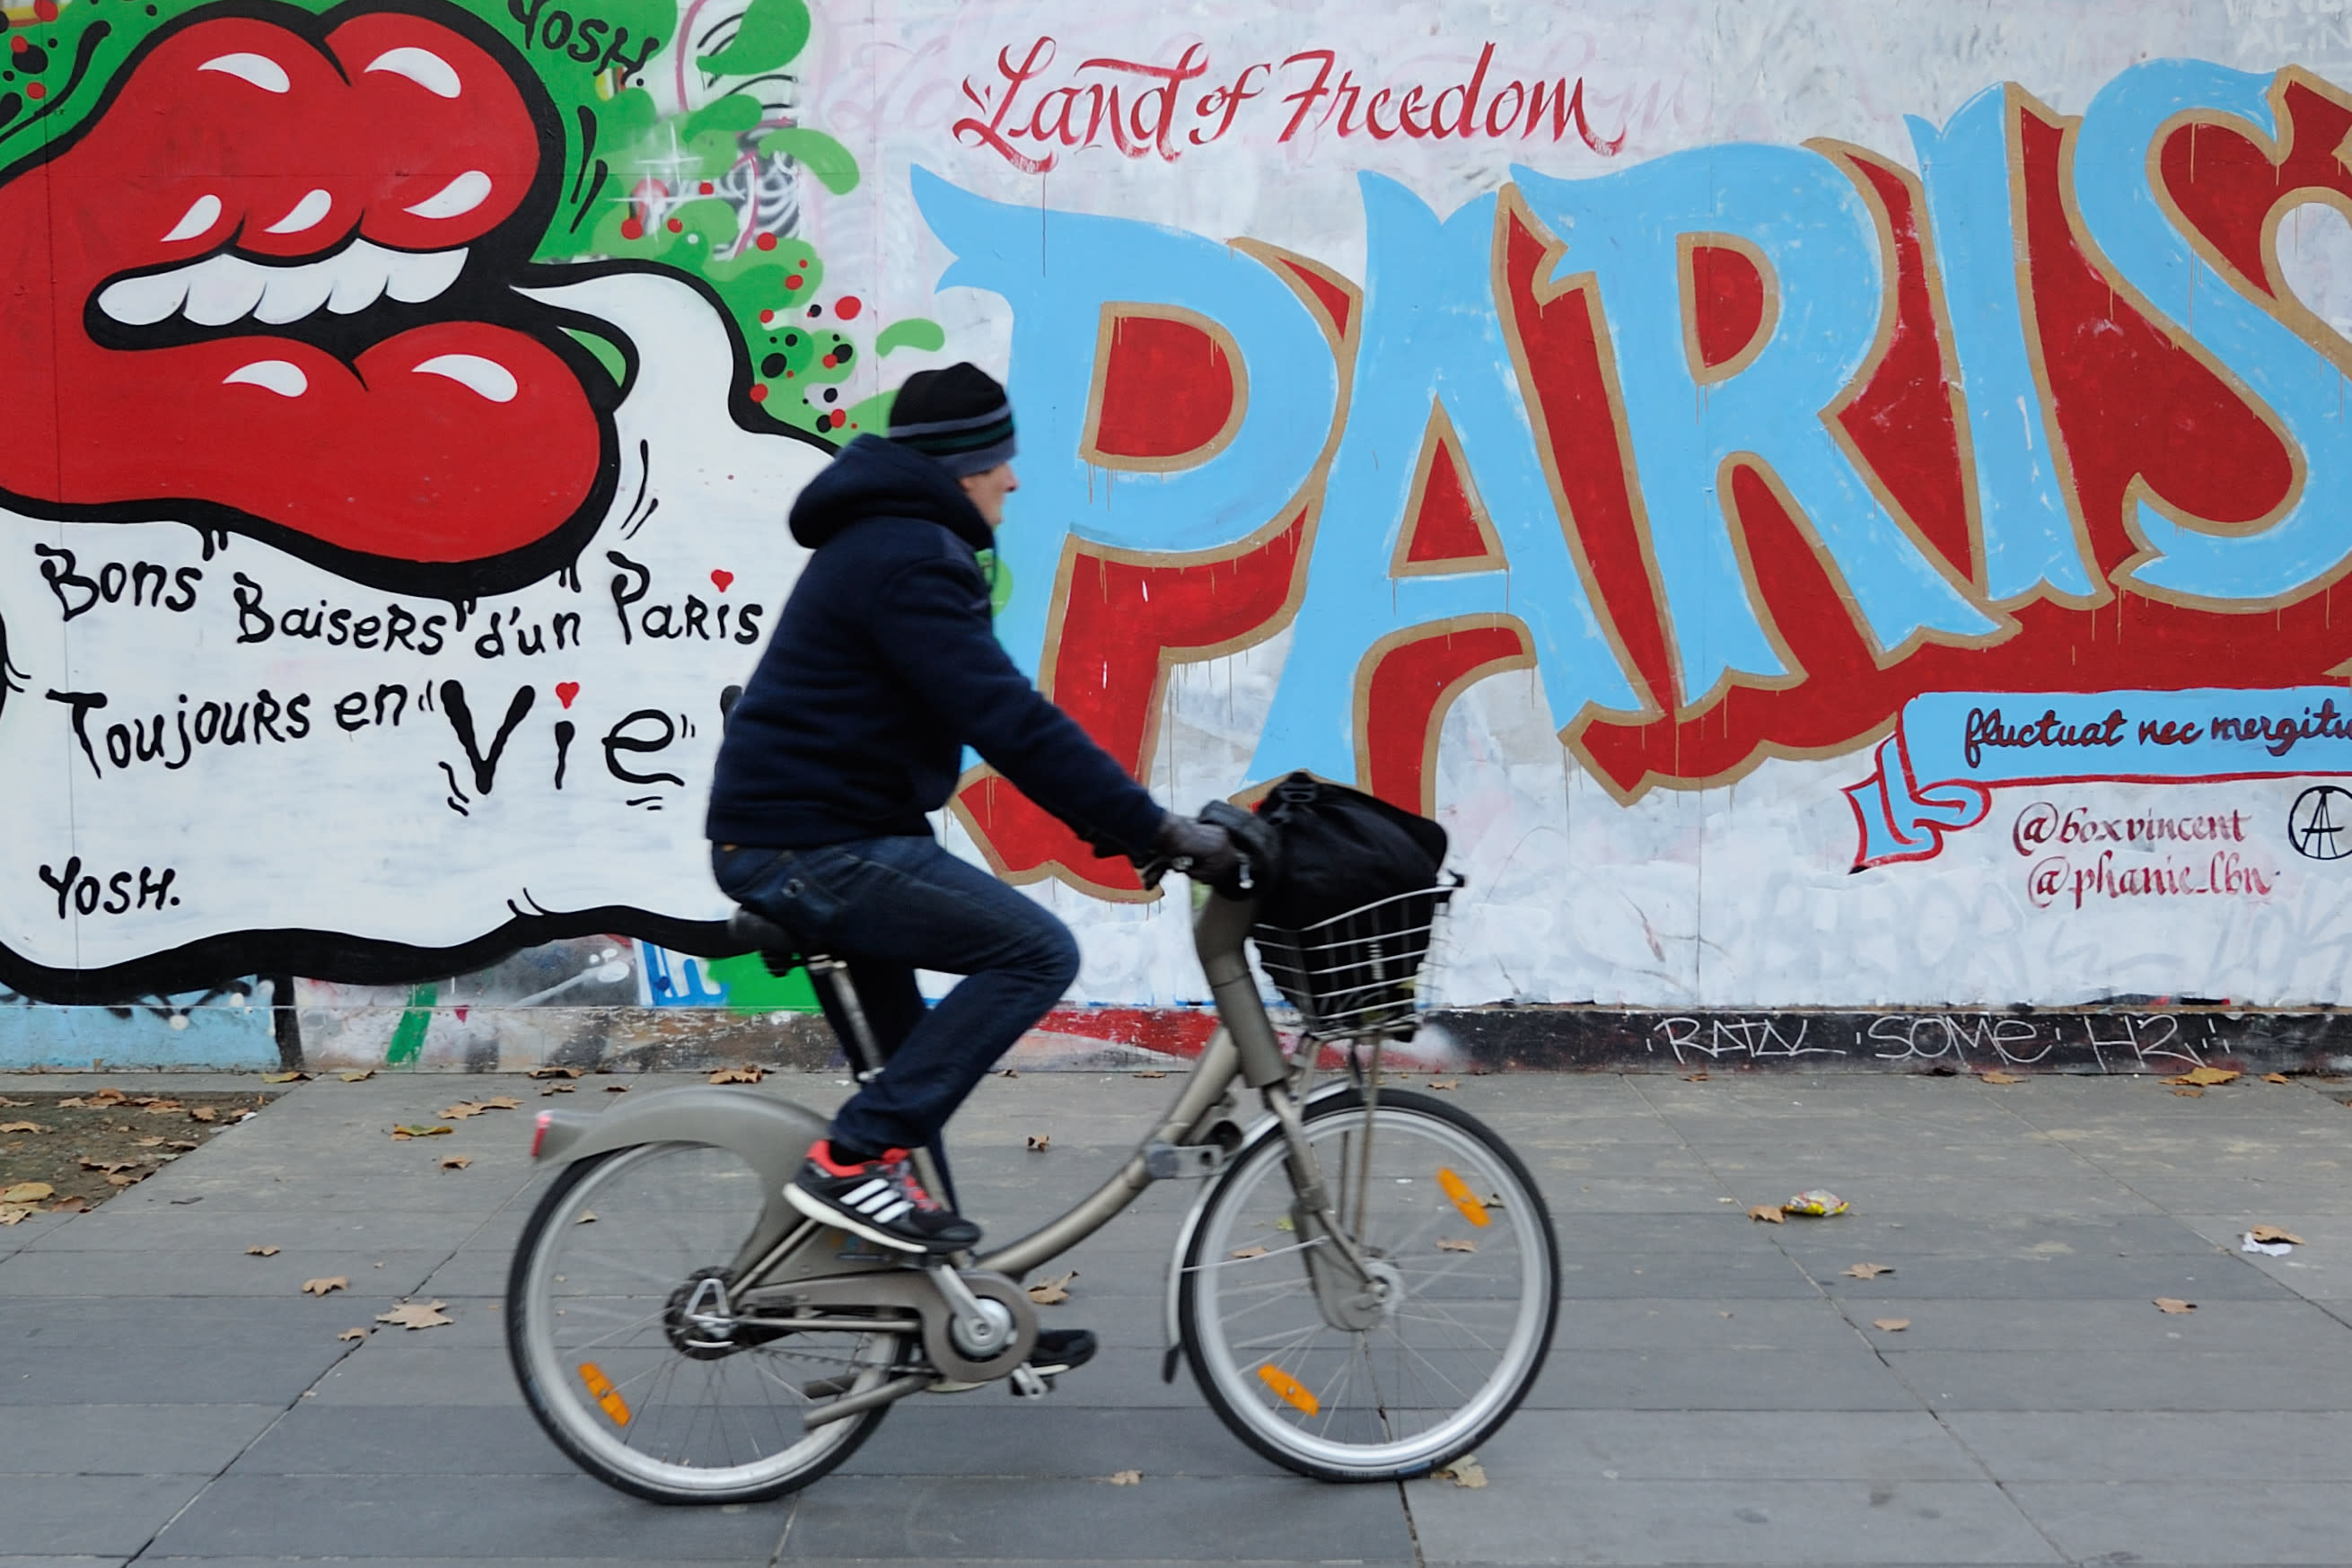 AP PHOTOS: Graffiti artists depict Paris' resilience